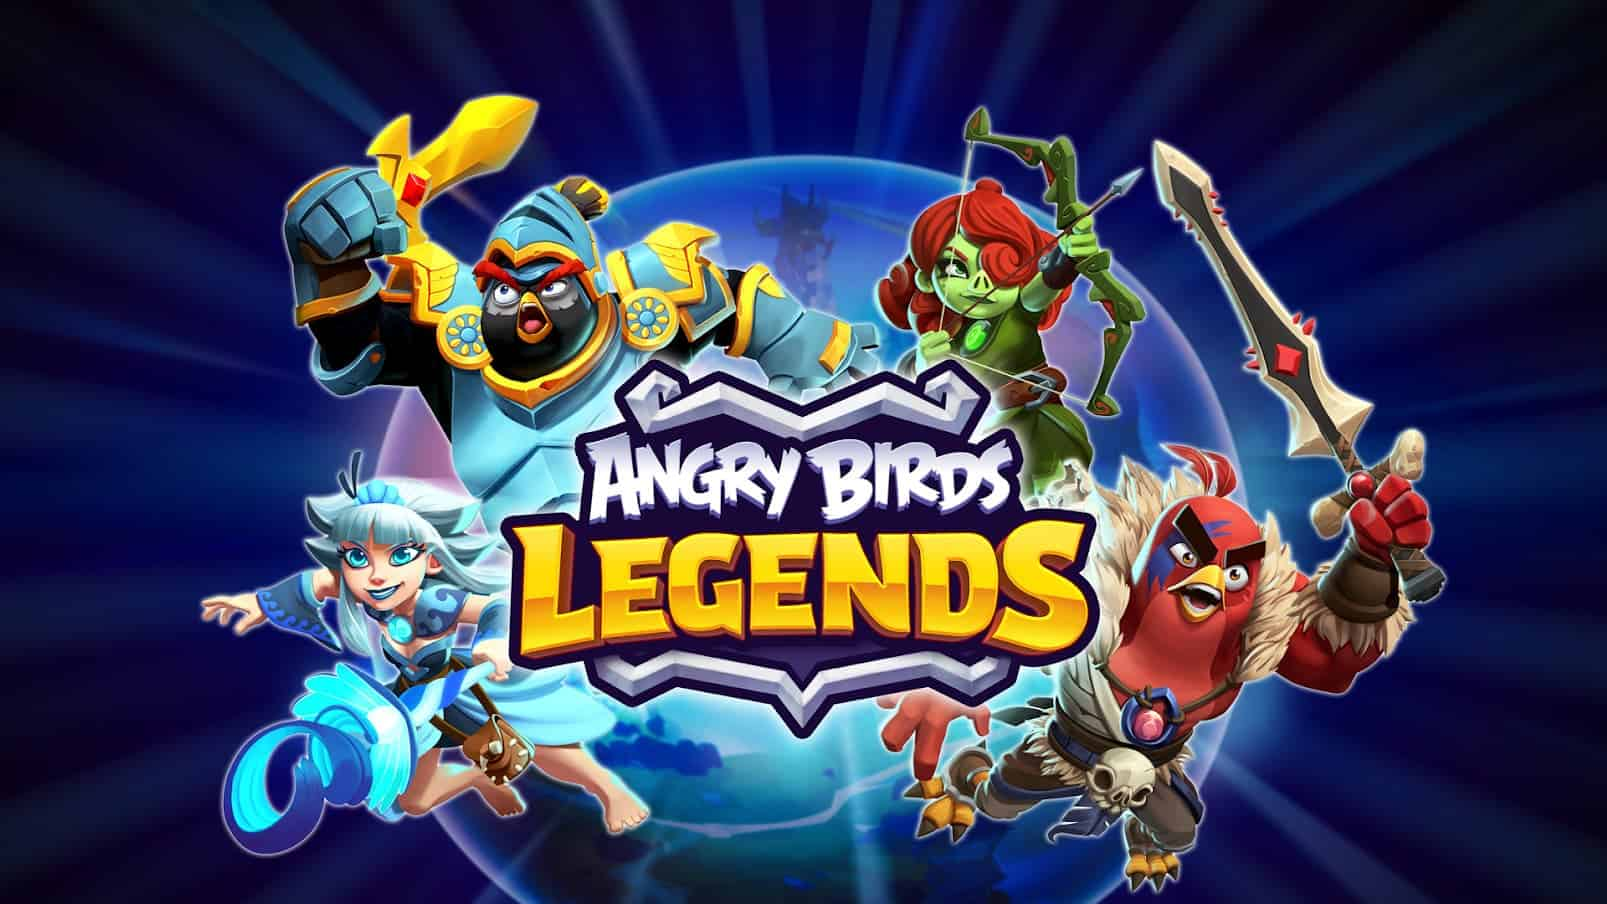 Angry Birds Is Back In This Weird Card-Based RPG Game - Android - US apps  and news - U.S. America